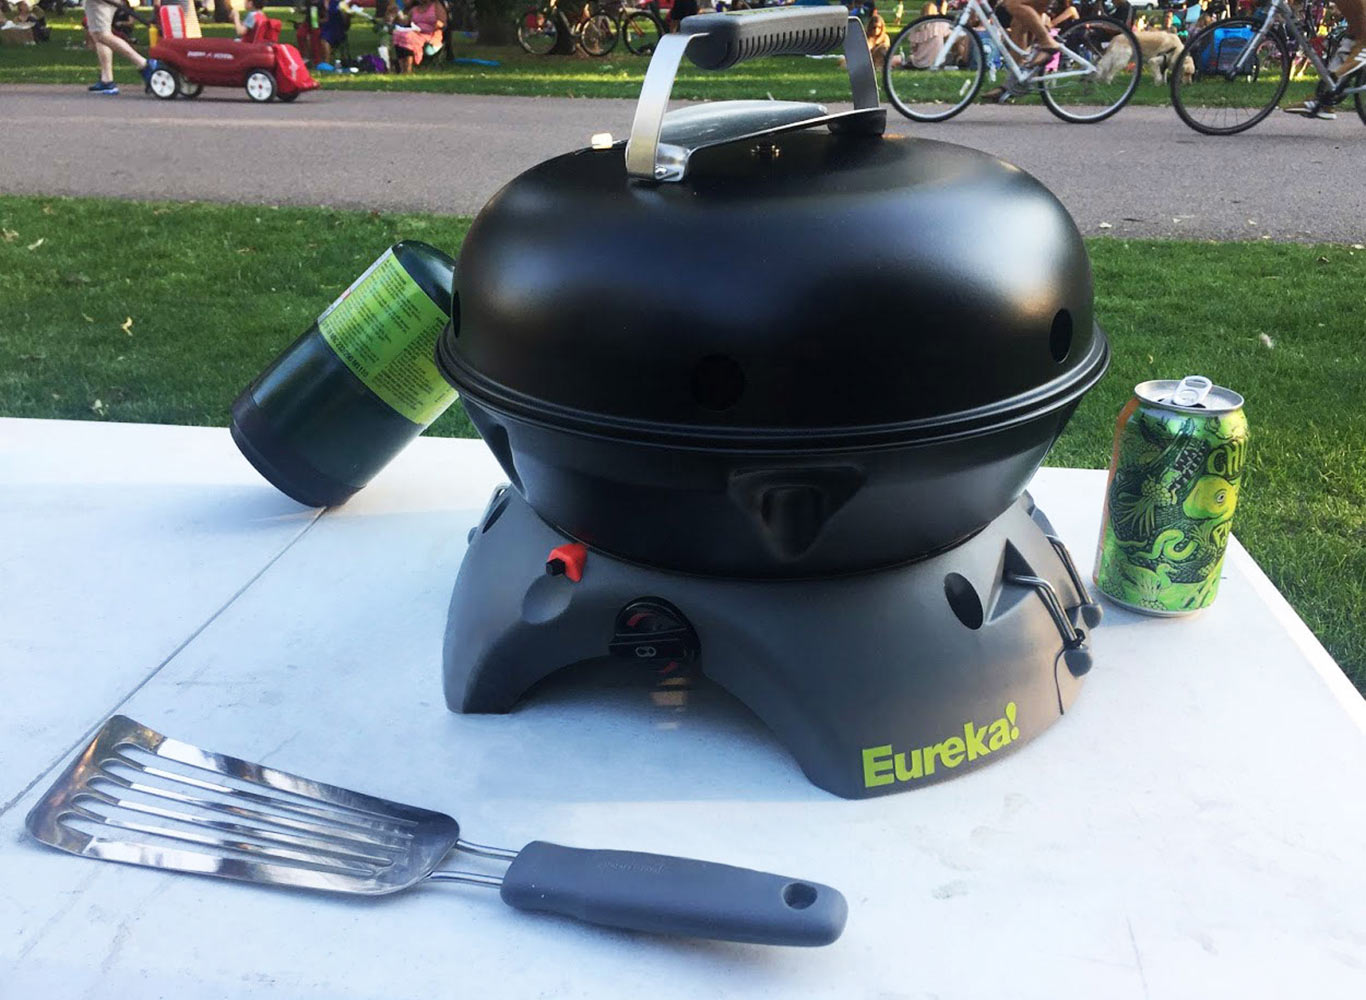 Review of the Portable Eureka! Gonzo Grill 3-in-1 Cook System